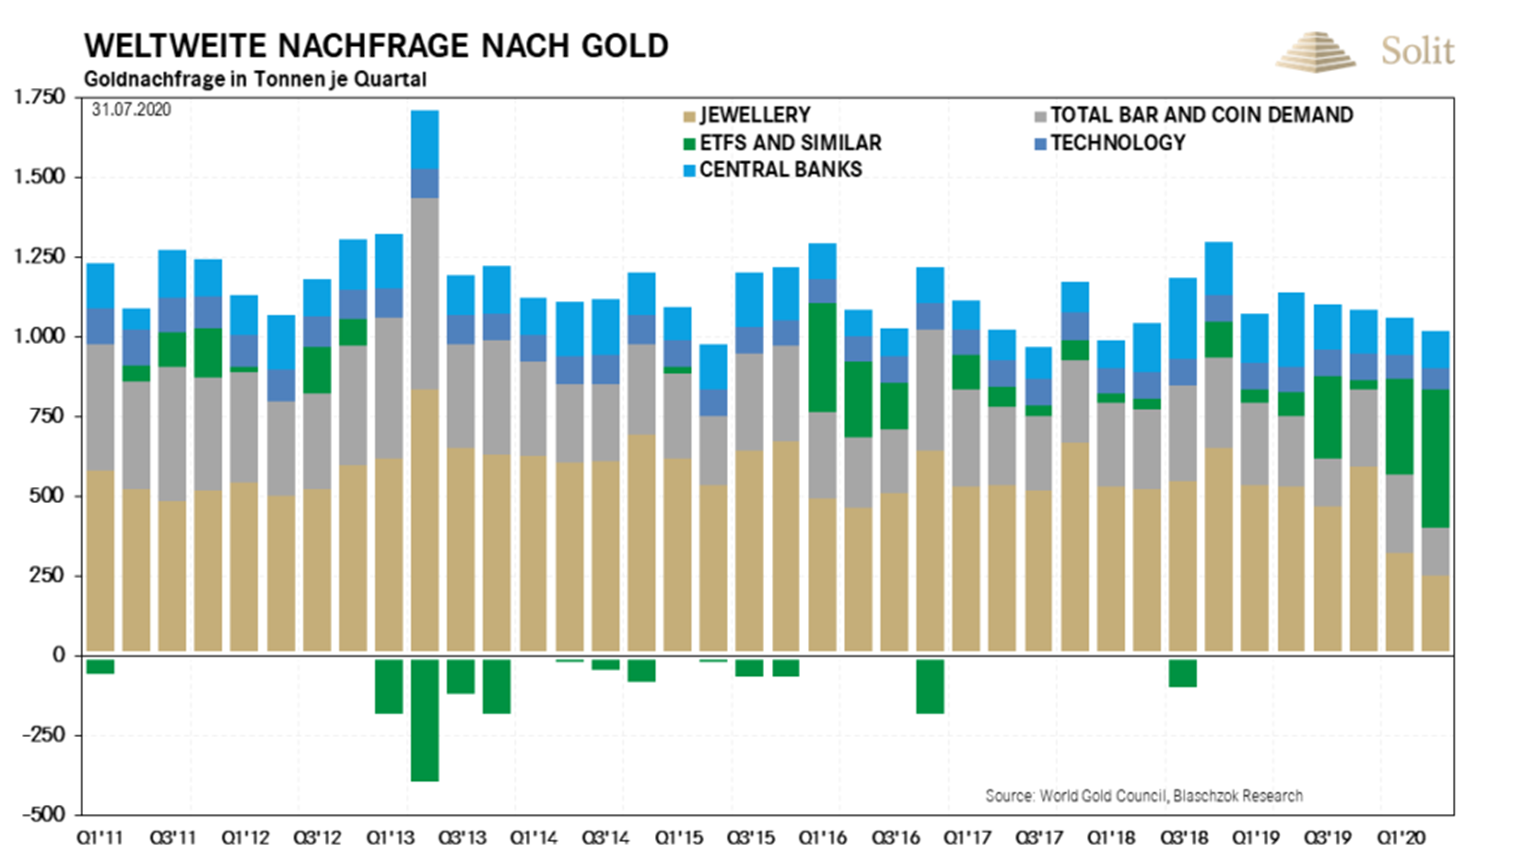 https://www.miningscout.de/wp-content/uploads/2020/08/2020.07.31-01-total-gold-demand-1024x576.png